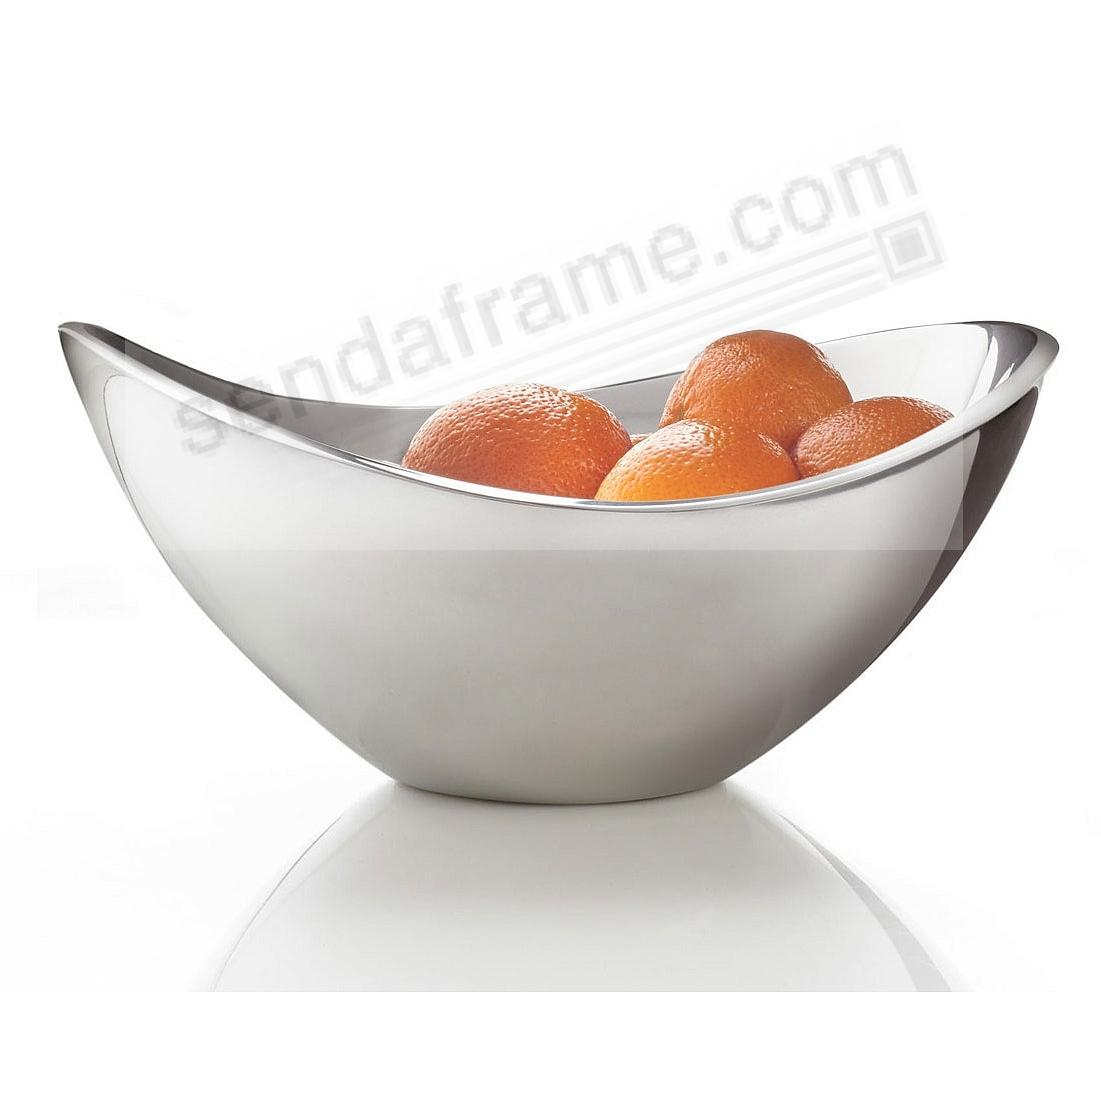 The Original BUTTERFLY 6-inch/8-oz BOWL crafted by Nambe®